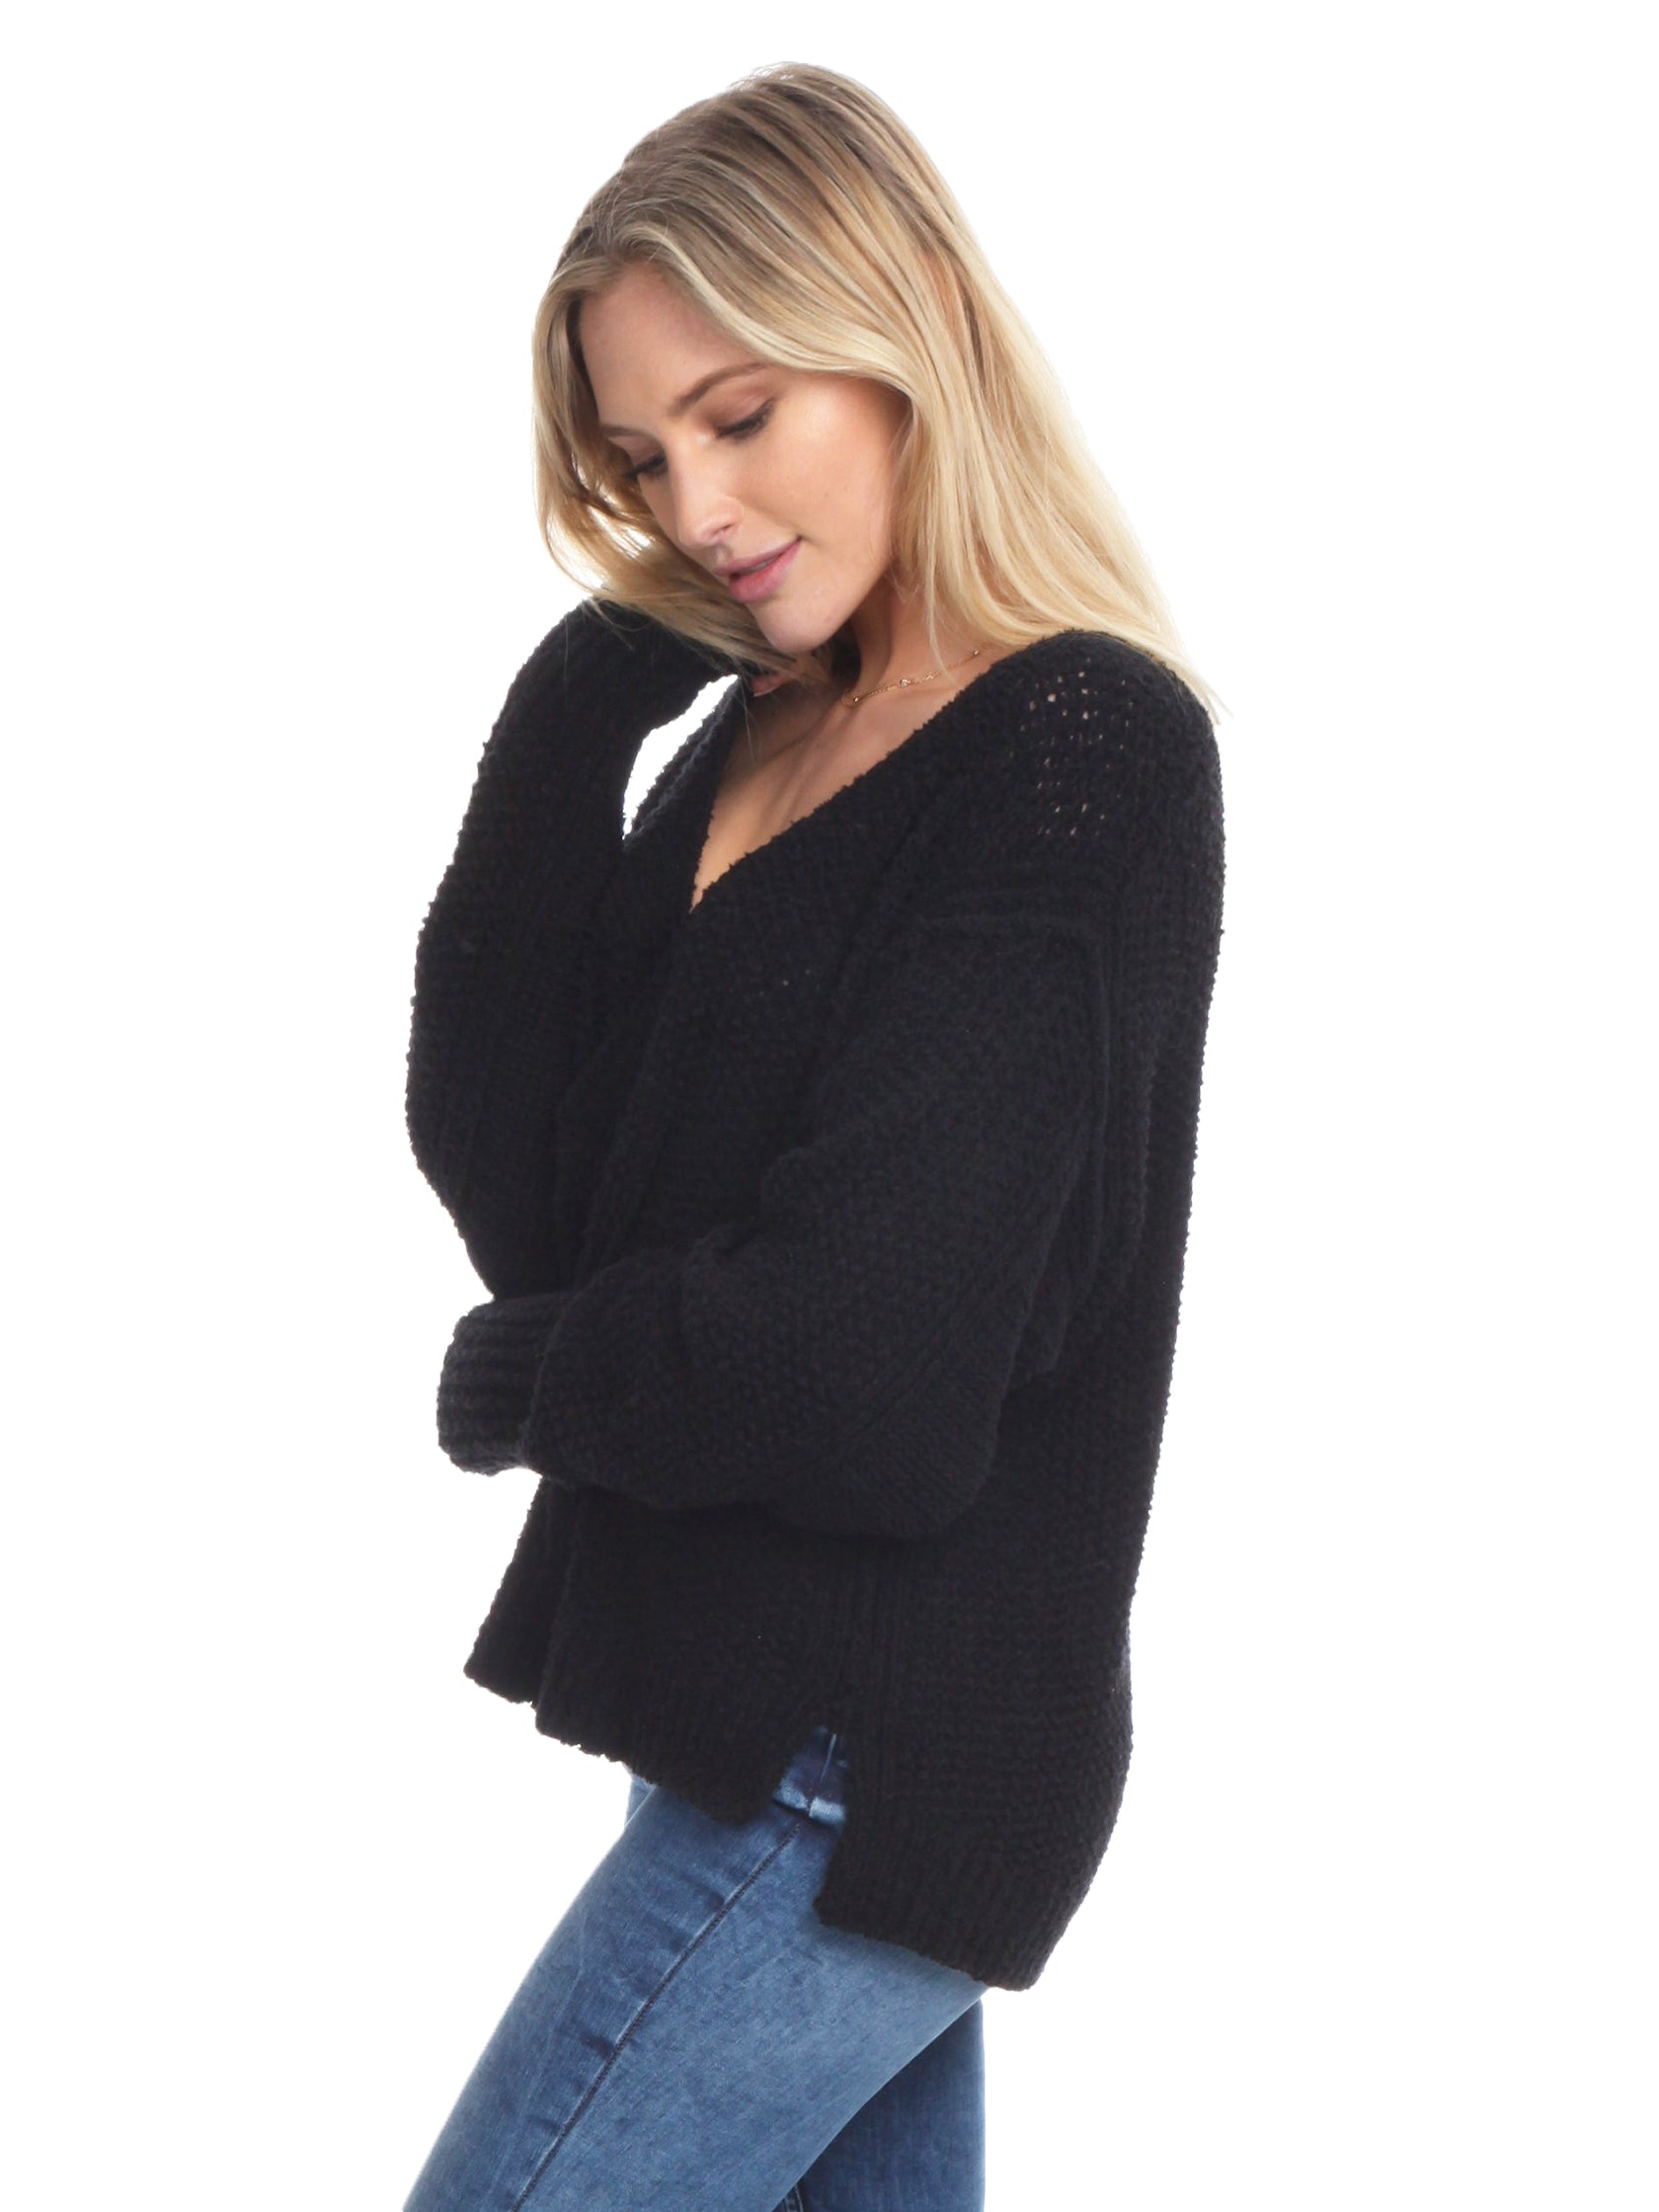 Women wearing a sweater rental from Free People called Coco V Neck Sweater